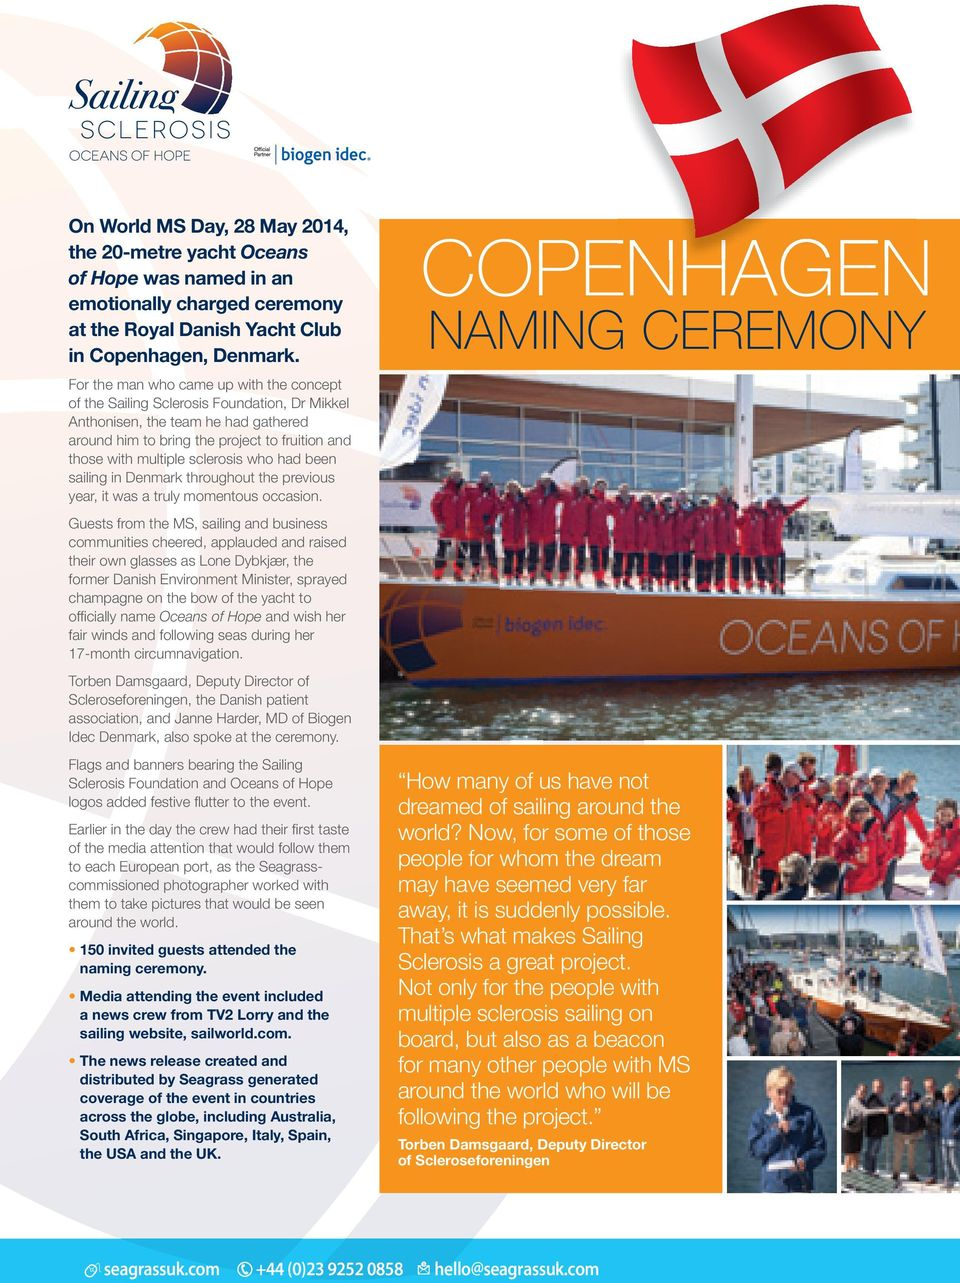 sclerosis who had been sailing in Denmark throughout the previous year, it was a truly momentous occasion.